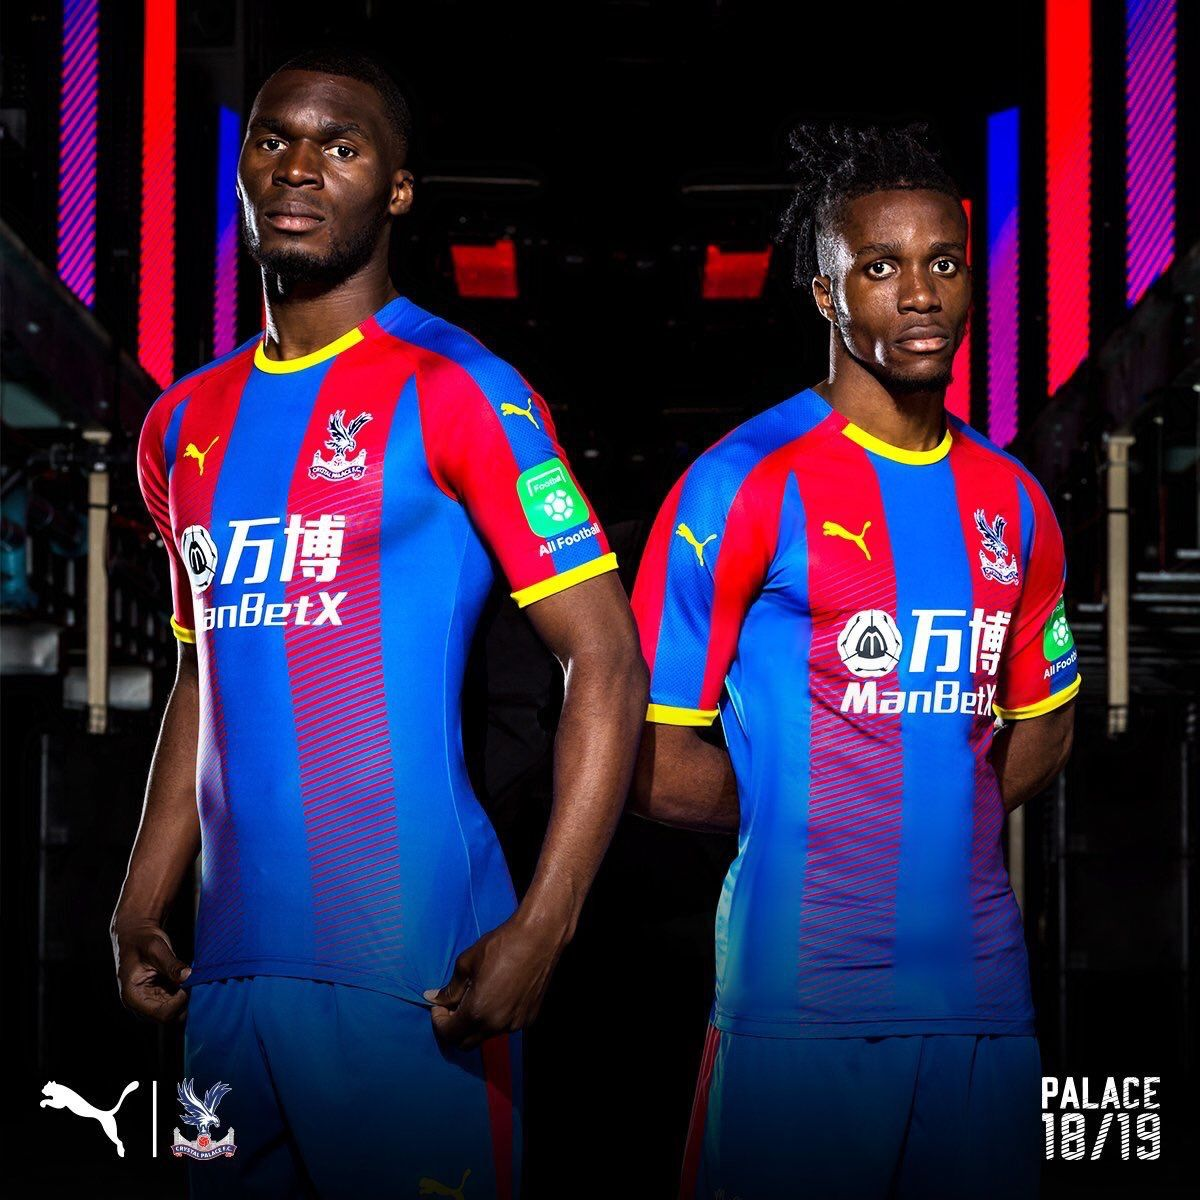 Crystal Palace 2018 2019 Home Kit.  5ca69f8e5